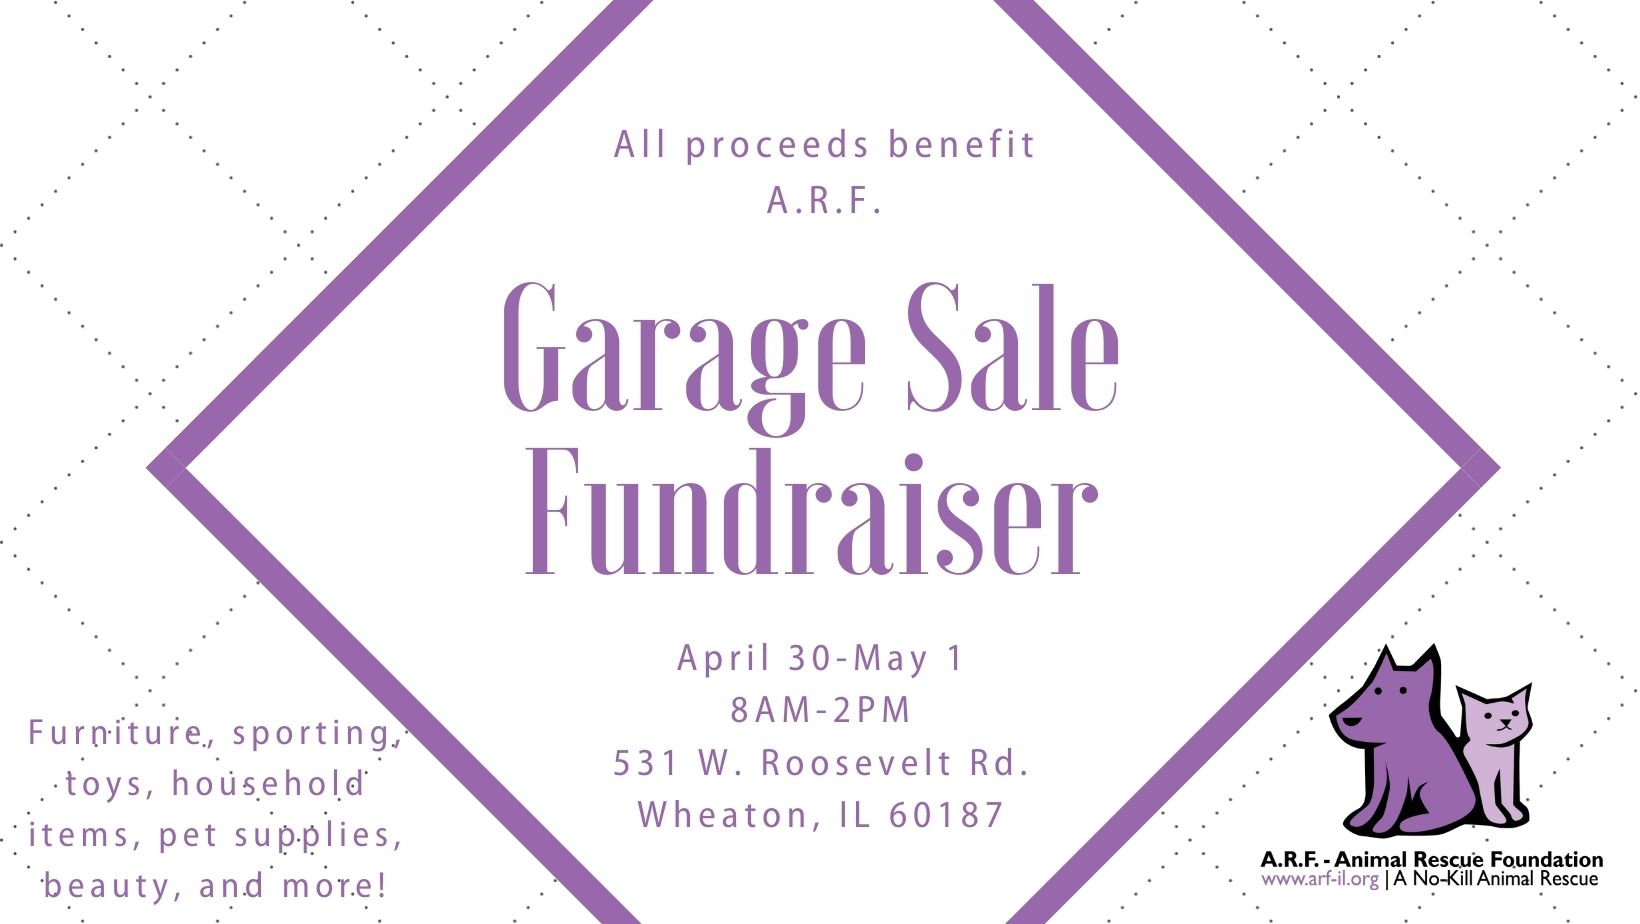 Garage Sale Fundraiser April 30-May 1